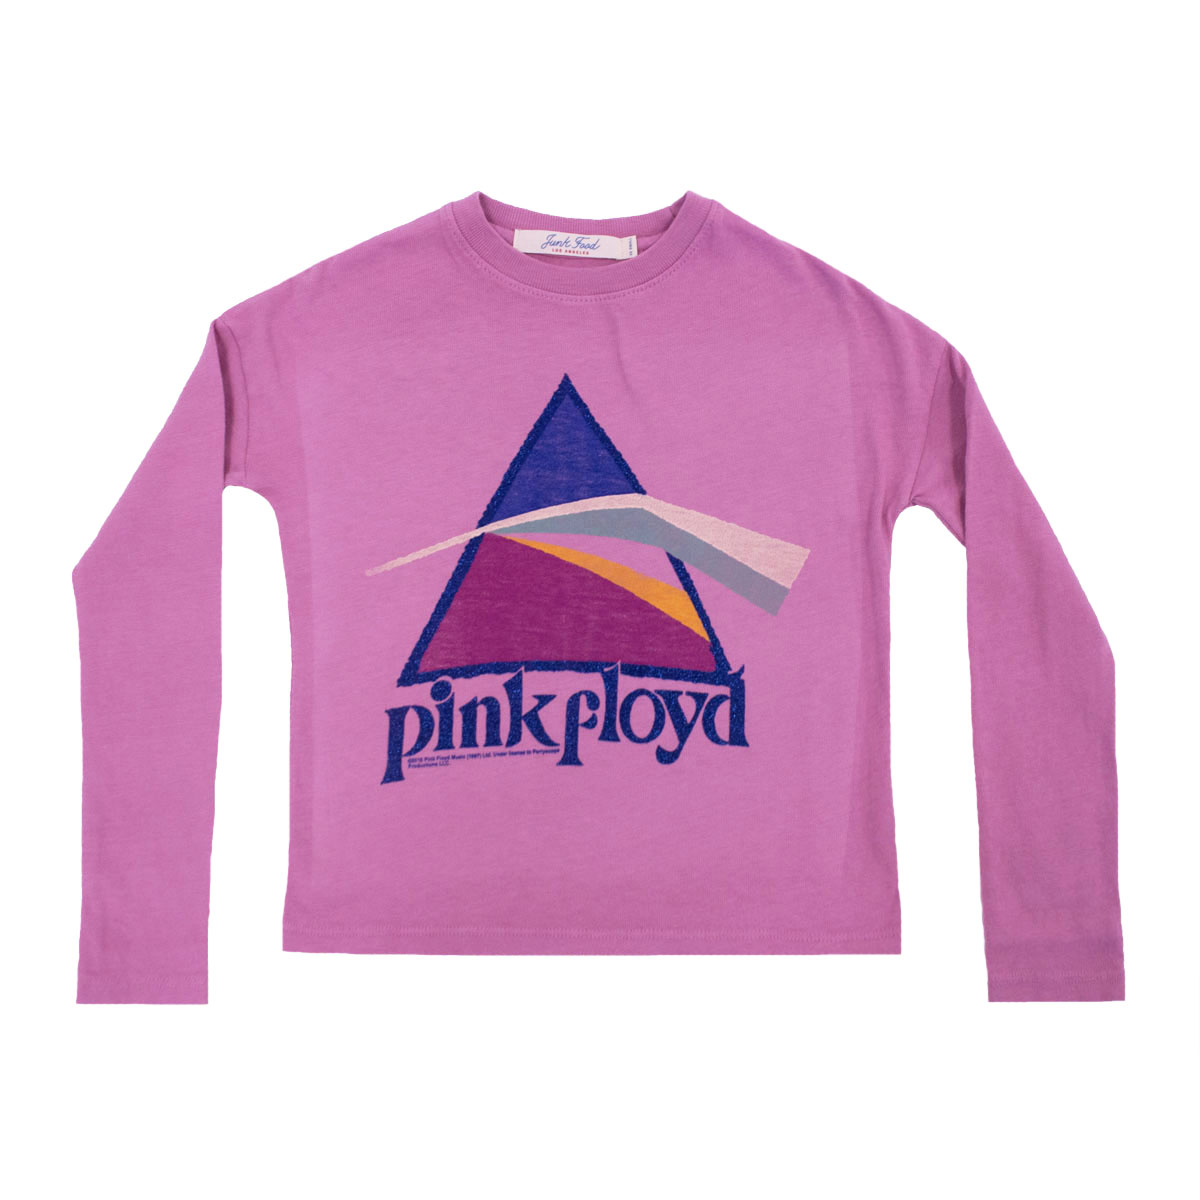 Junk Food Pink Long Sleeve Tee with Pink Floyd Logo Print